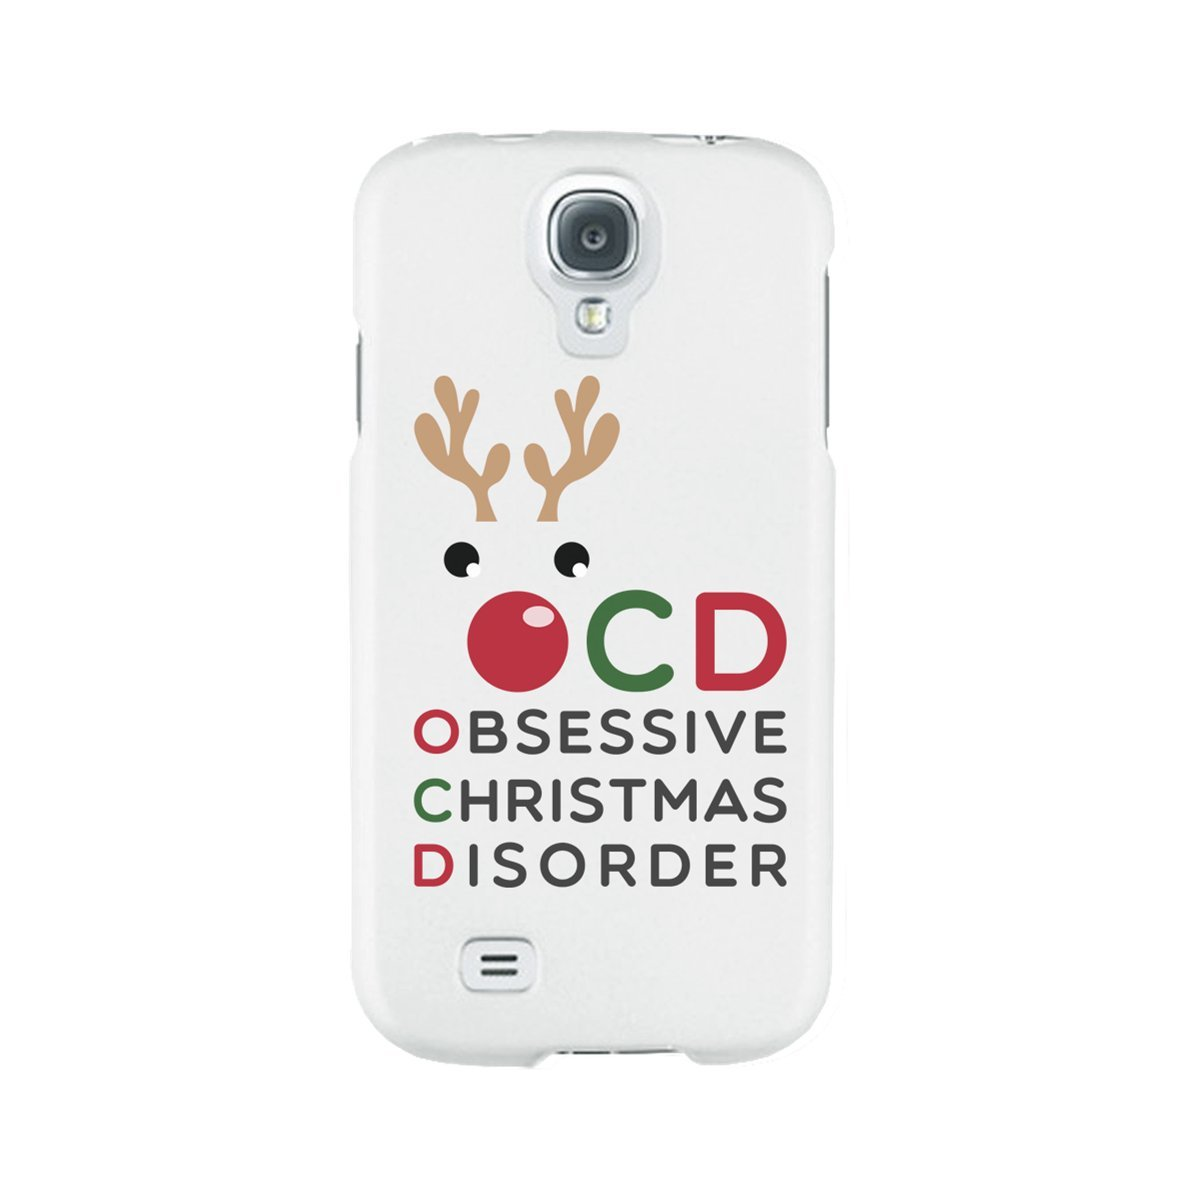 87f03683be Amazon.com: Cute Obsessive Christmas Disorder Rudolph phone case for iphone  4, iphone 5, iphone 5C, iphone 6, iphone 6 plus, Galaxy S4, Galaxy S5, ...